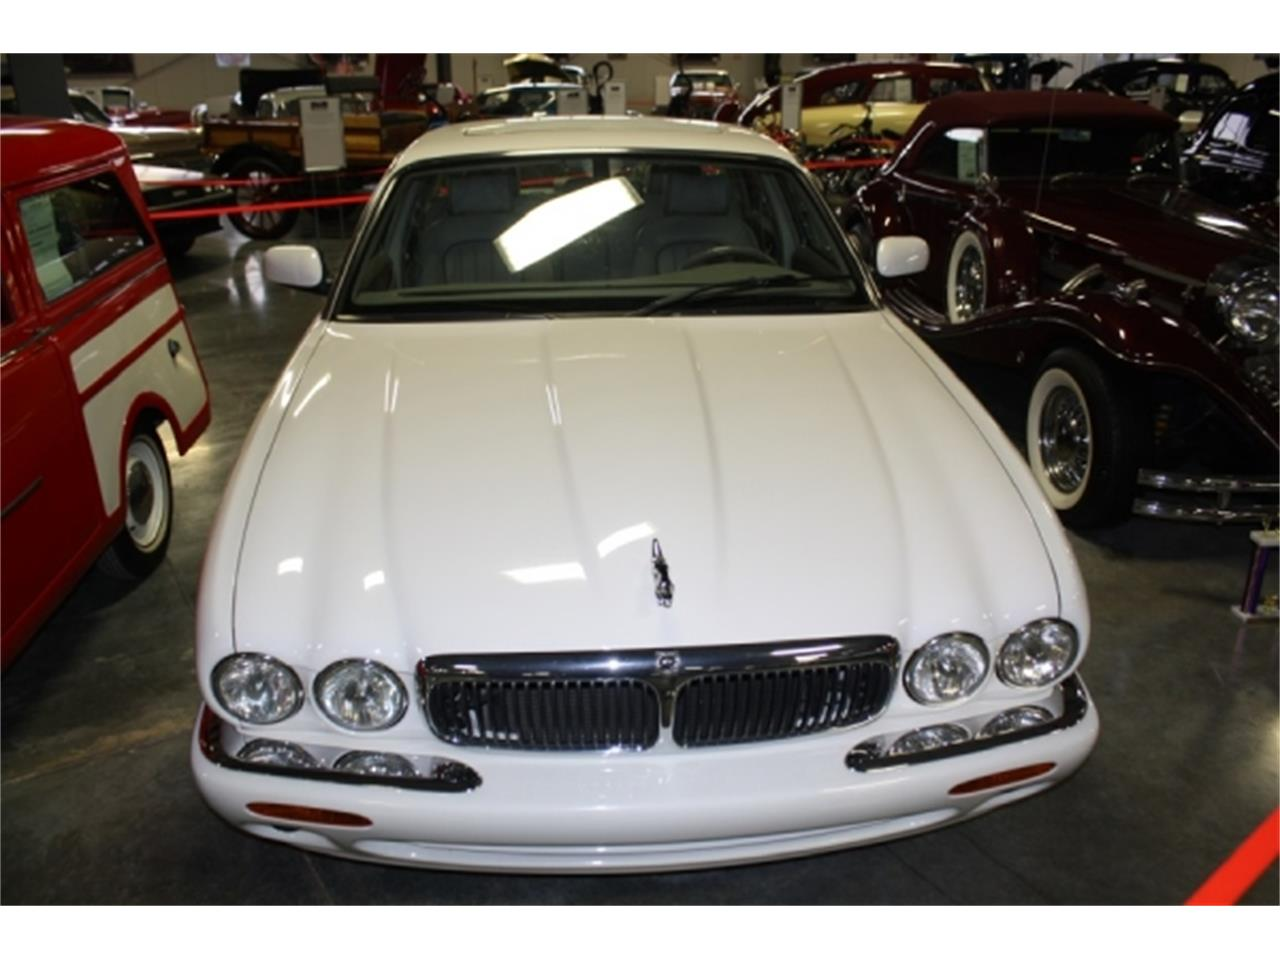 Large Picture of '01 Jaguar XJ8 located in Missouri - $7,000.00 Offered by Branson Auto & Farm Museum - DSCT